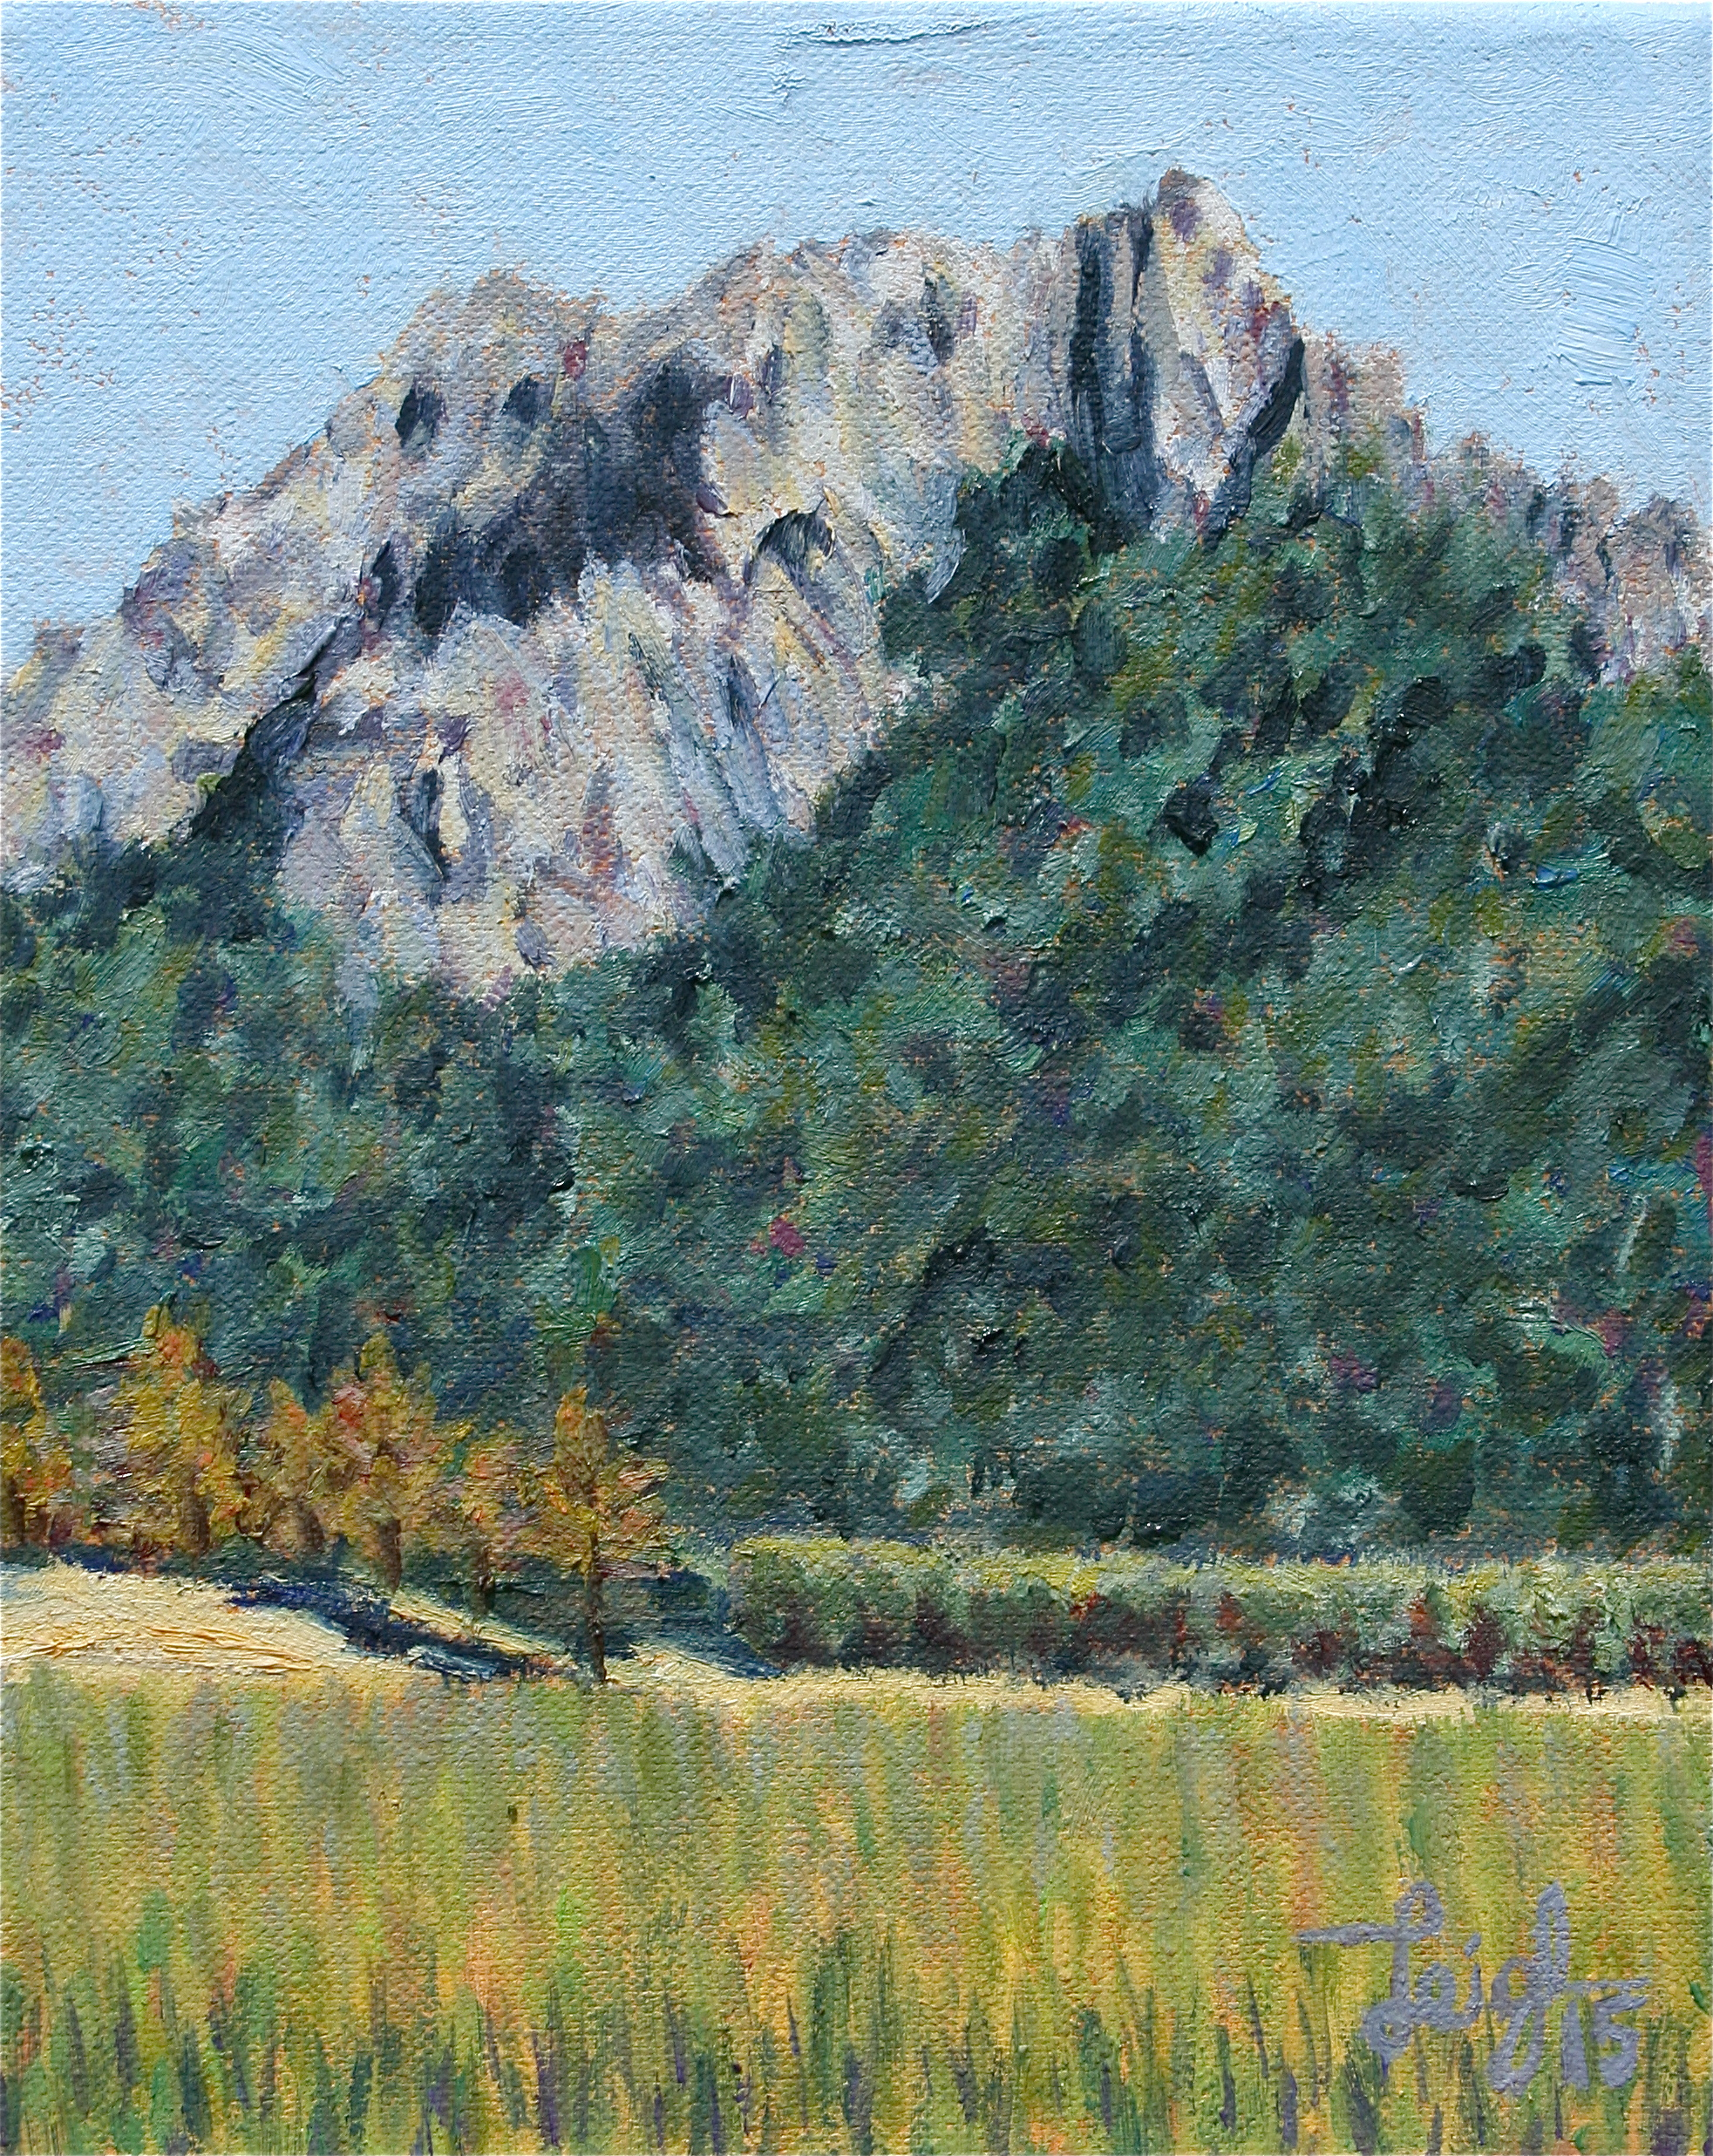 Hollister Peak #4  ~   Ray & Sally Lemberg, Prescott, AZ  2015 • 8 x 10